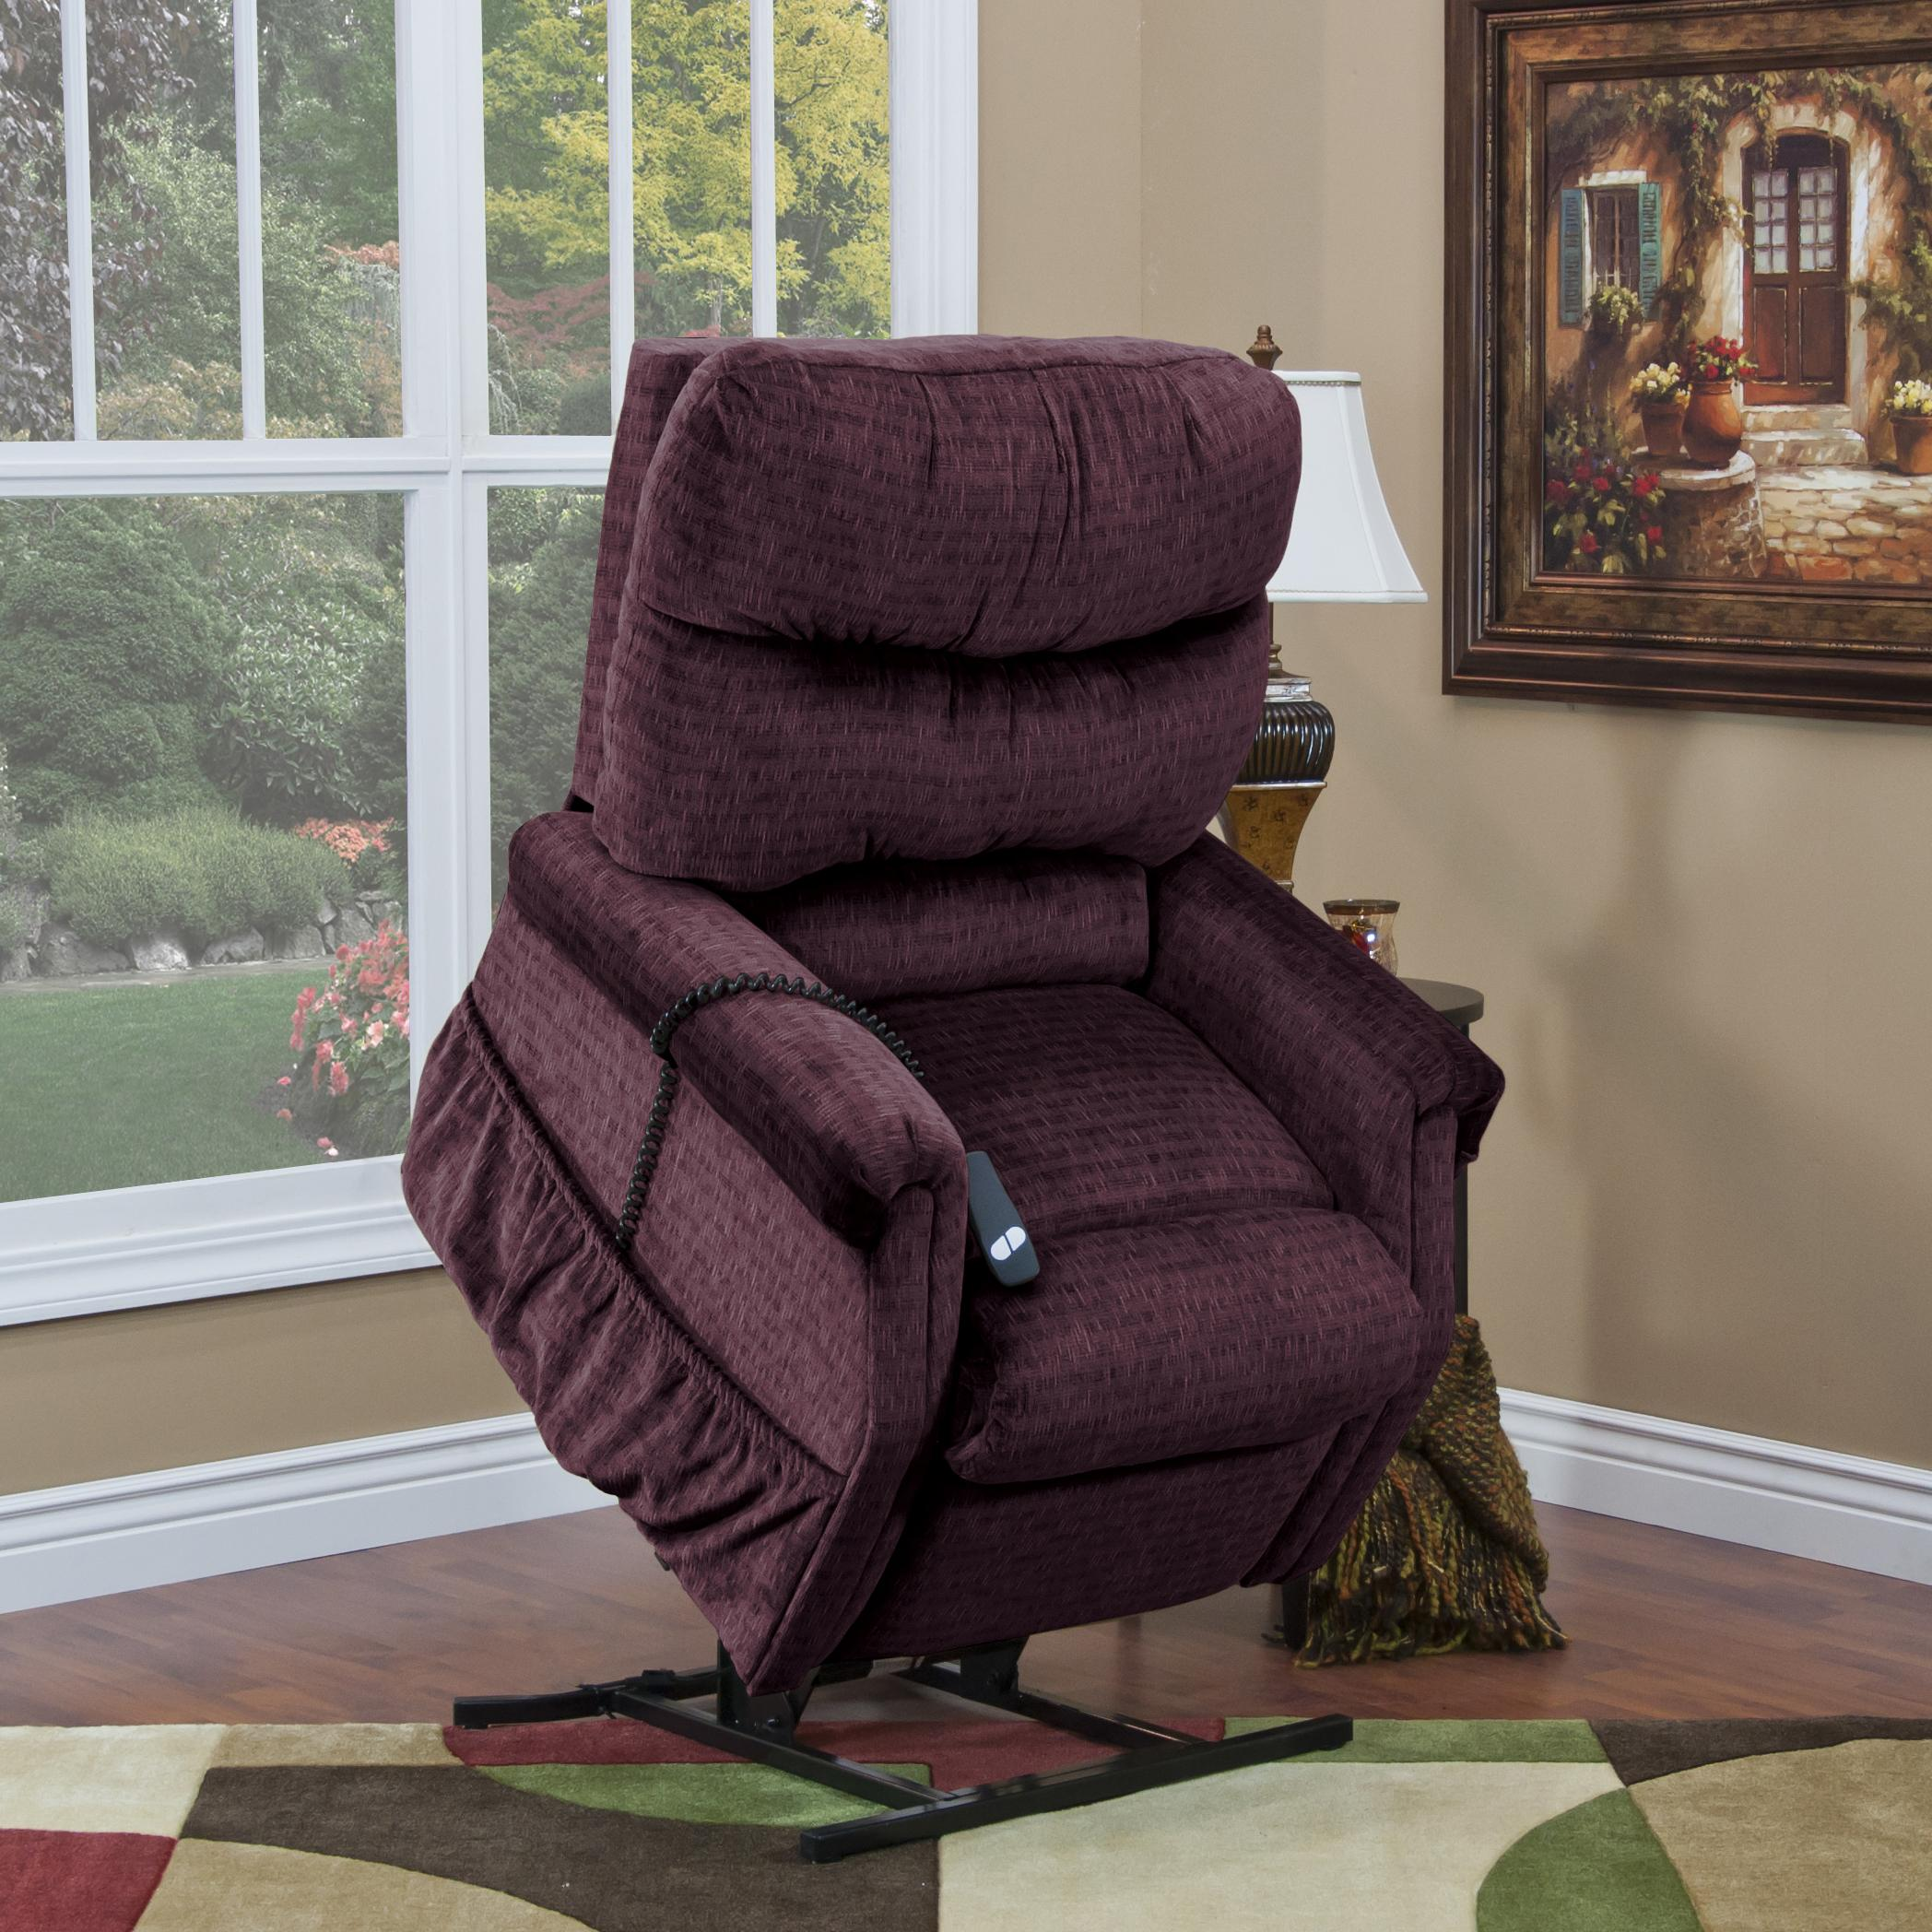 1193 Lift Recliner by Med-Lift & Mobility at Miller Home